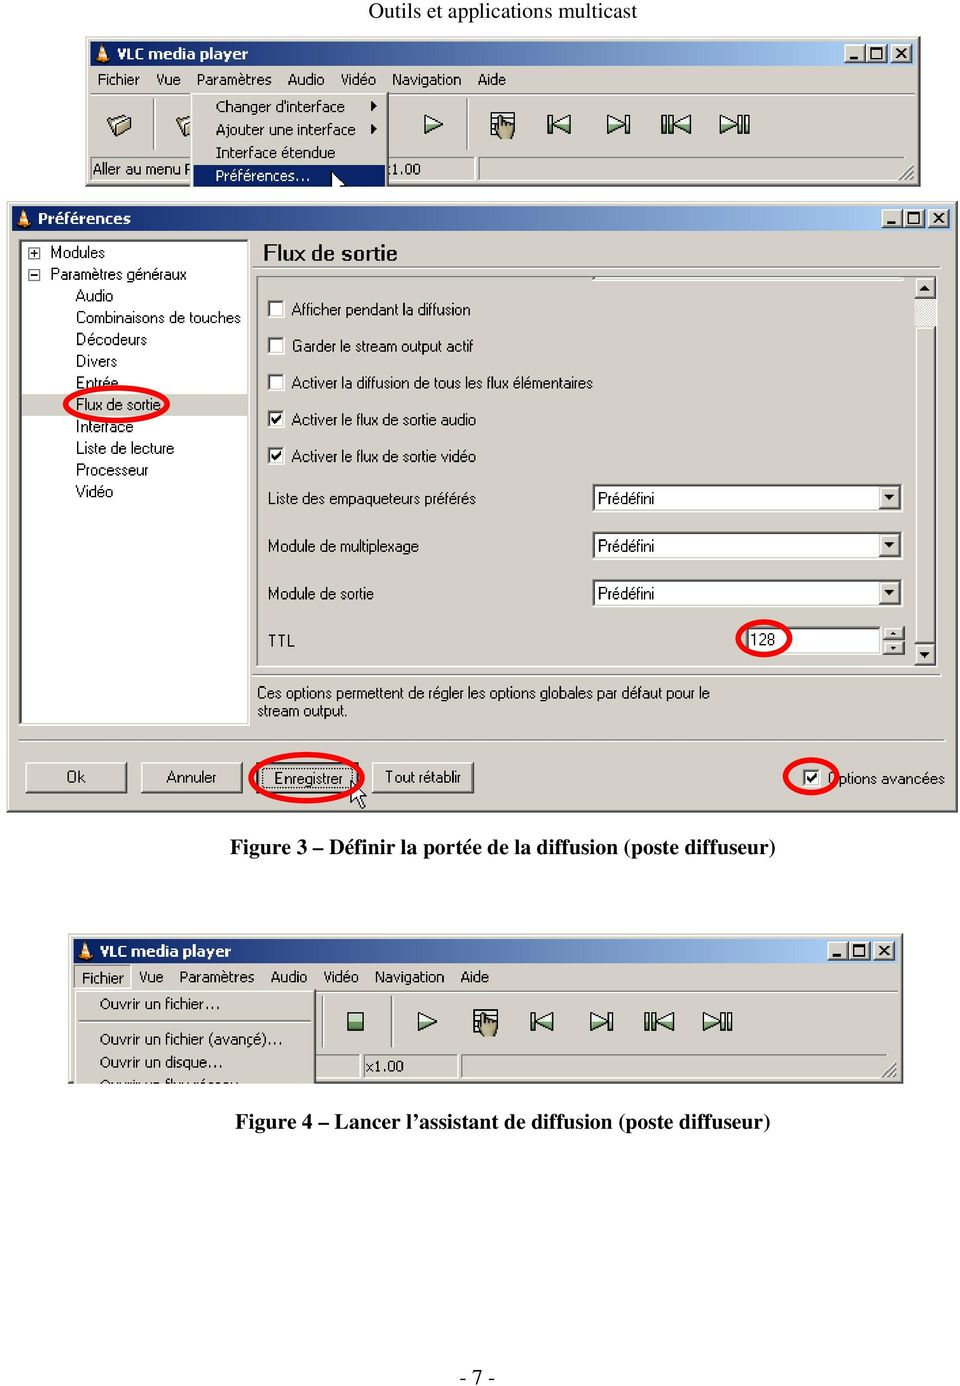 Figure 4 Lancer l assistant de